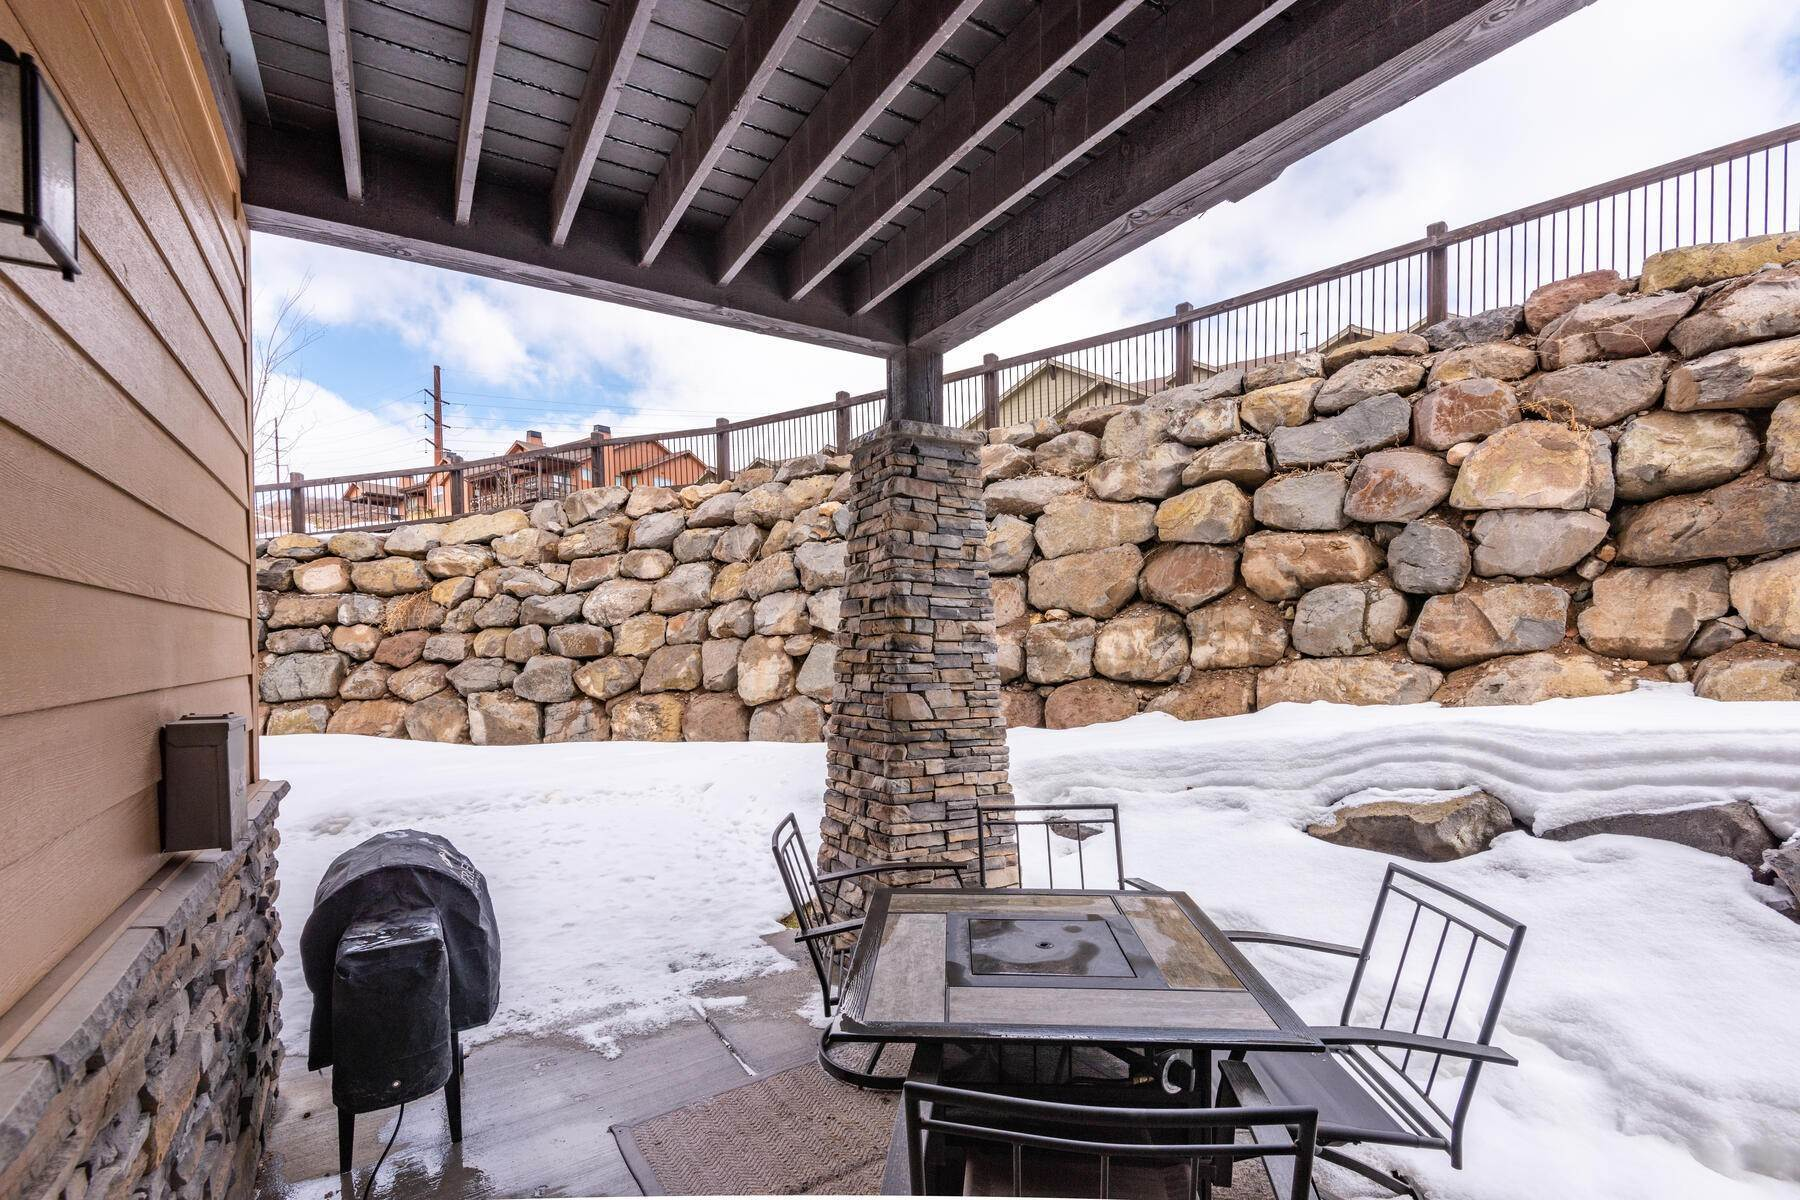 18. Condominiums for Sale at 3 Bedrooms Under $500k Within Minutes of Park City 14345 N Buck Horn Trail E Kamas, Utah 84036 United States